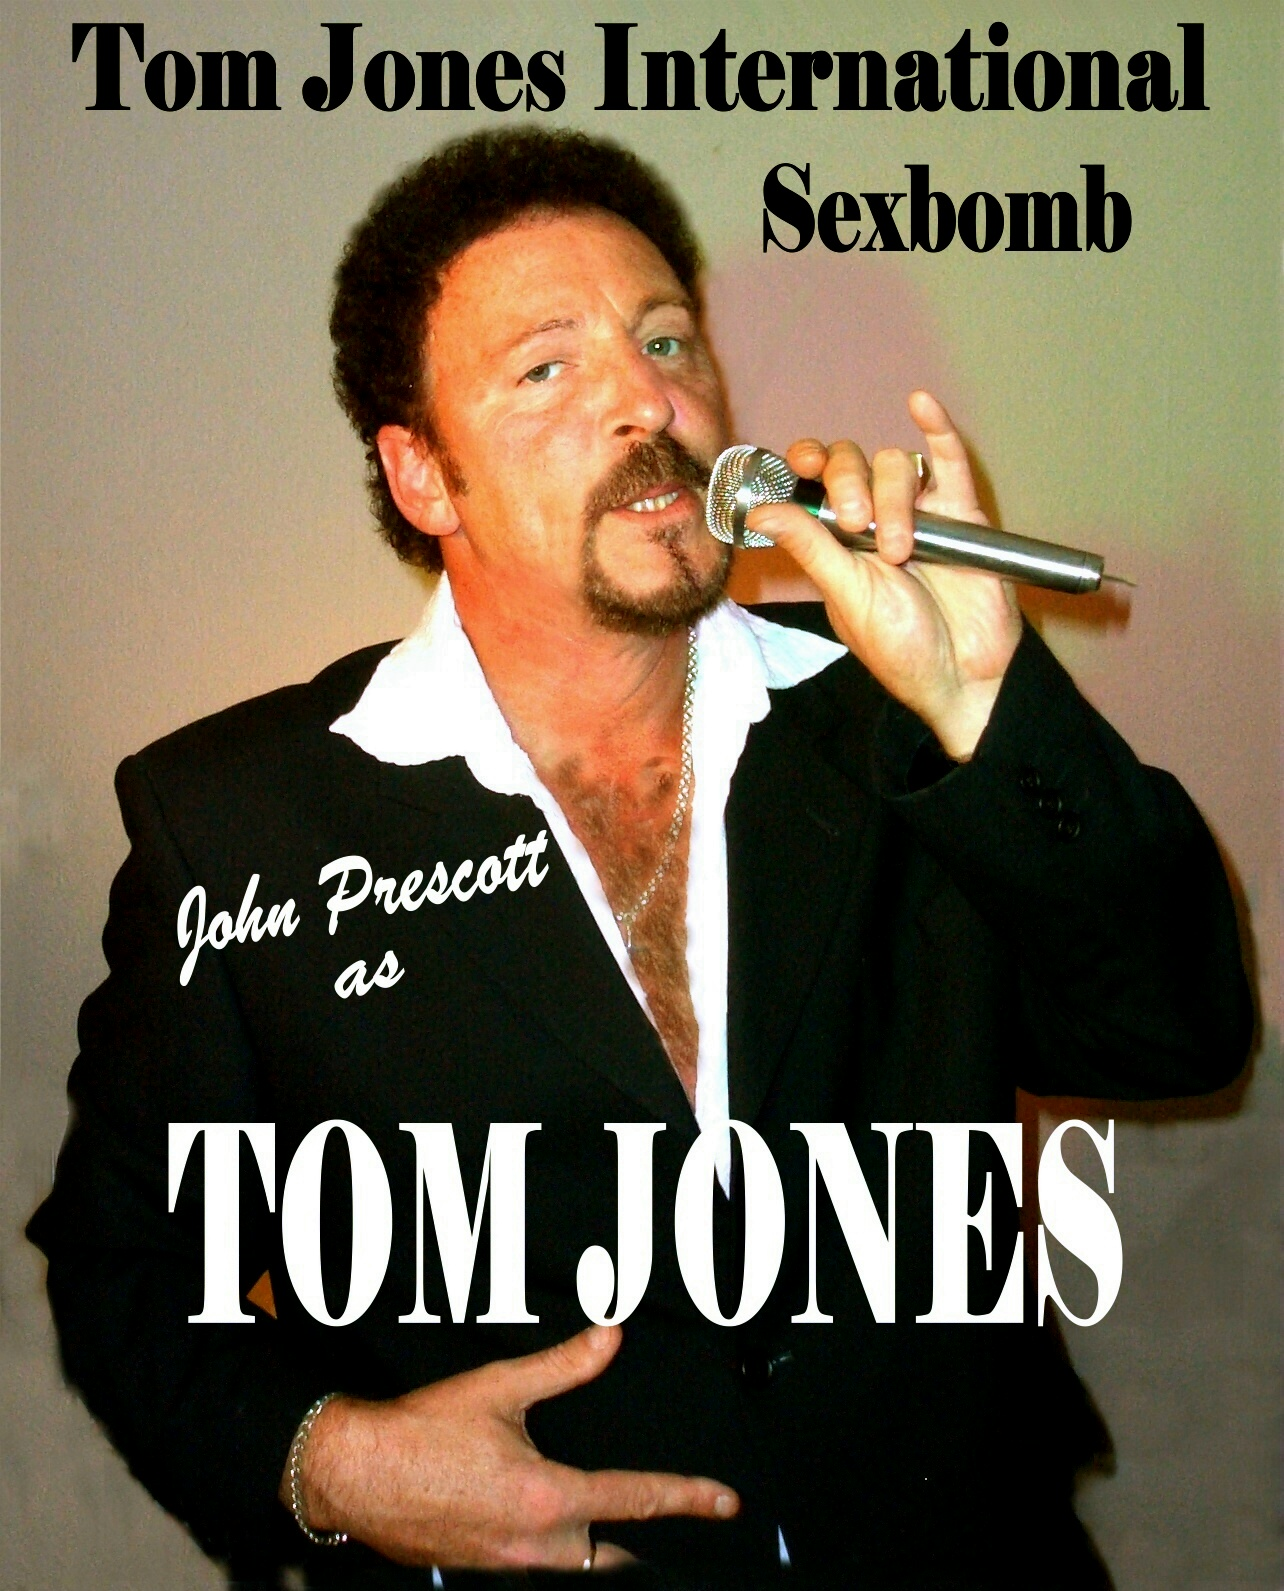 Tom jones sexbomb, naked brit teens